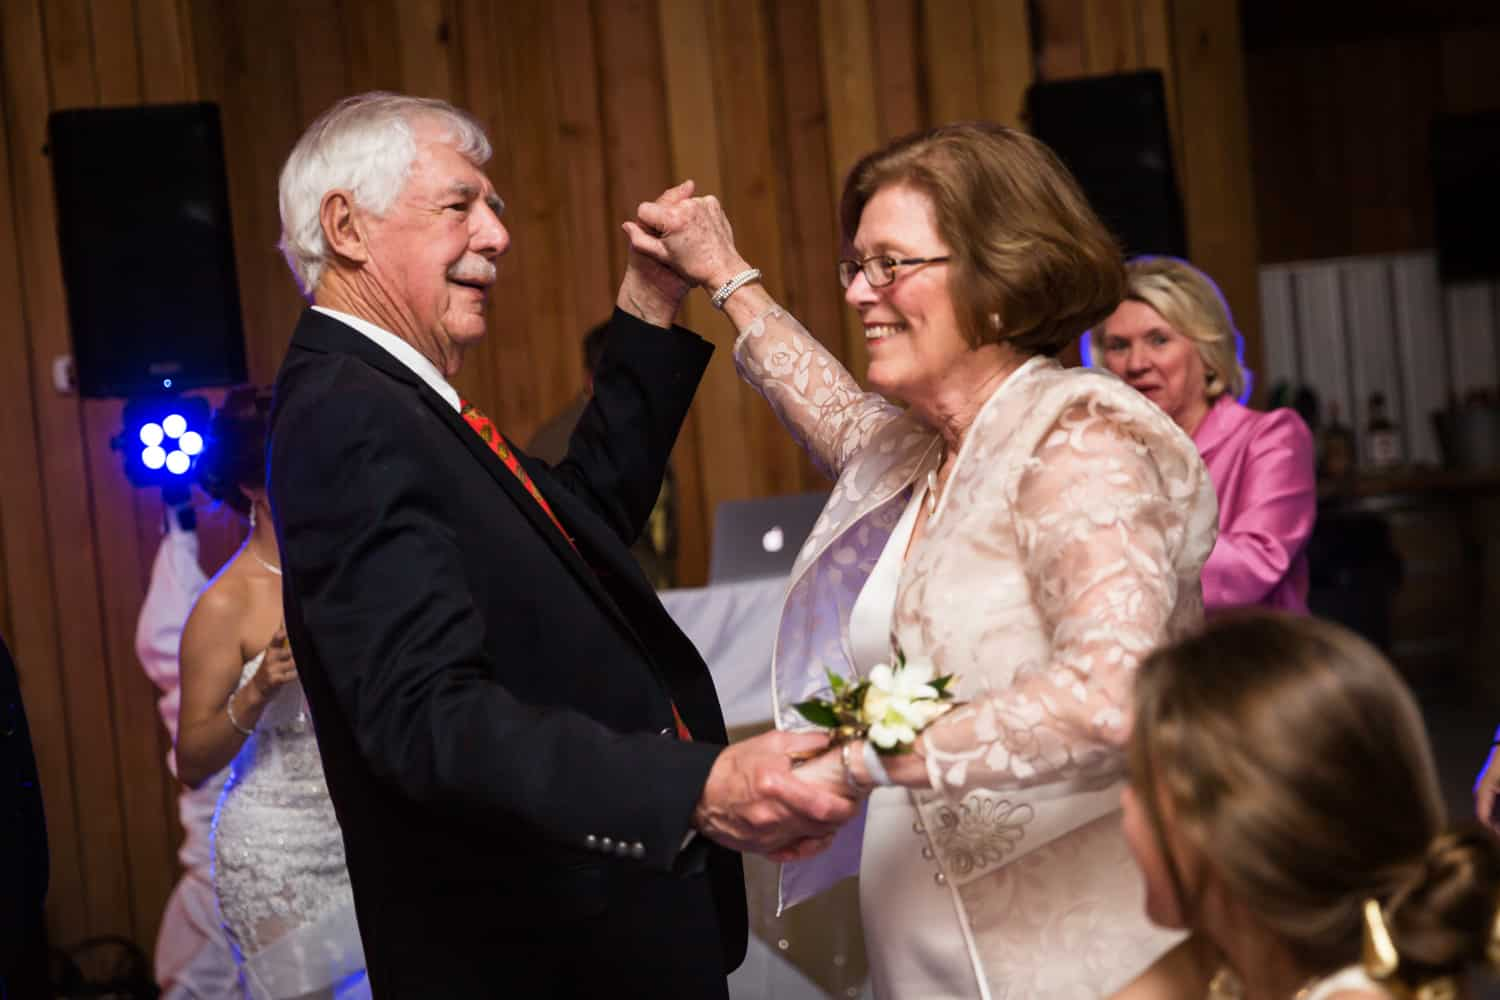 Mother of groom dancing with older man during Florida wedding reception